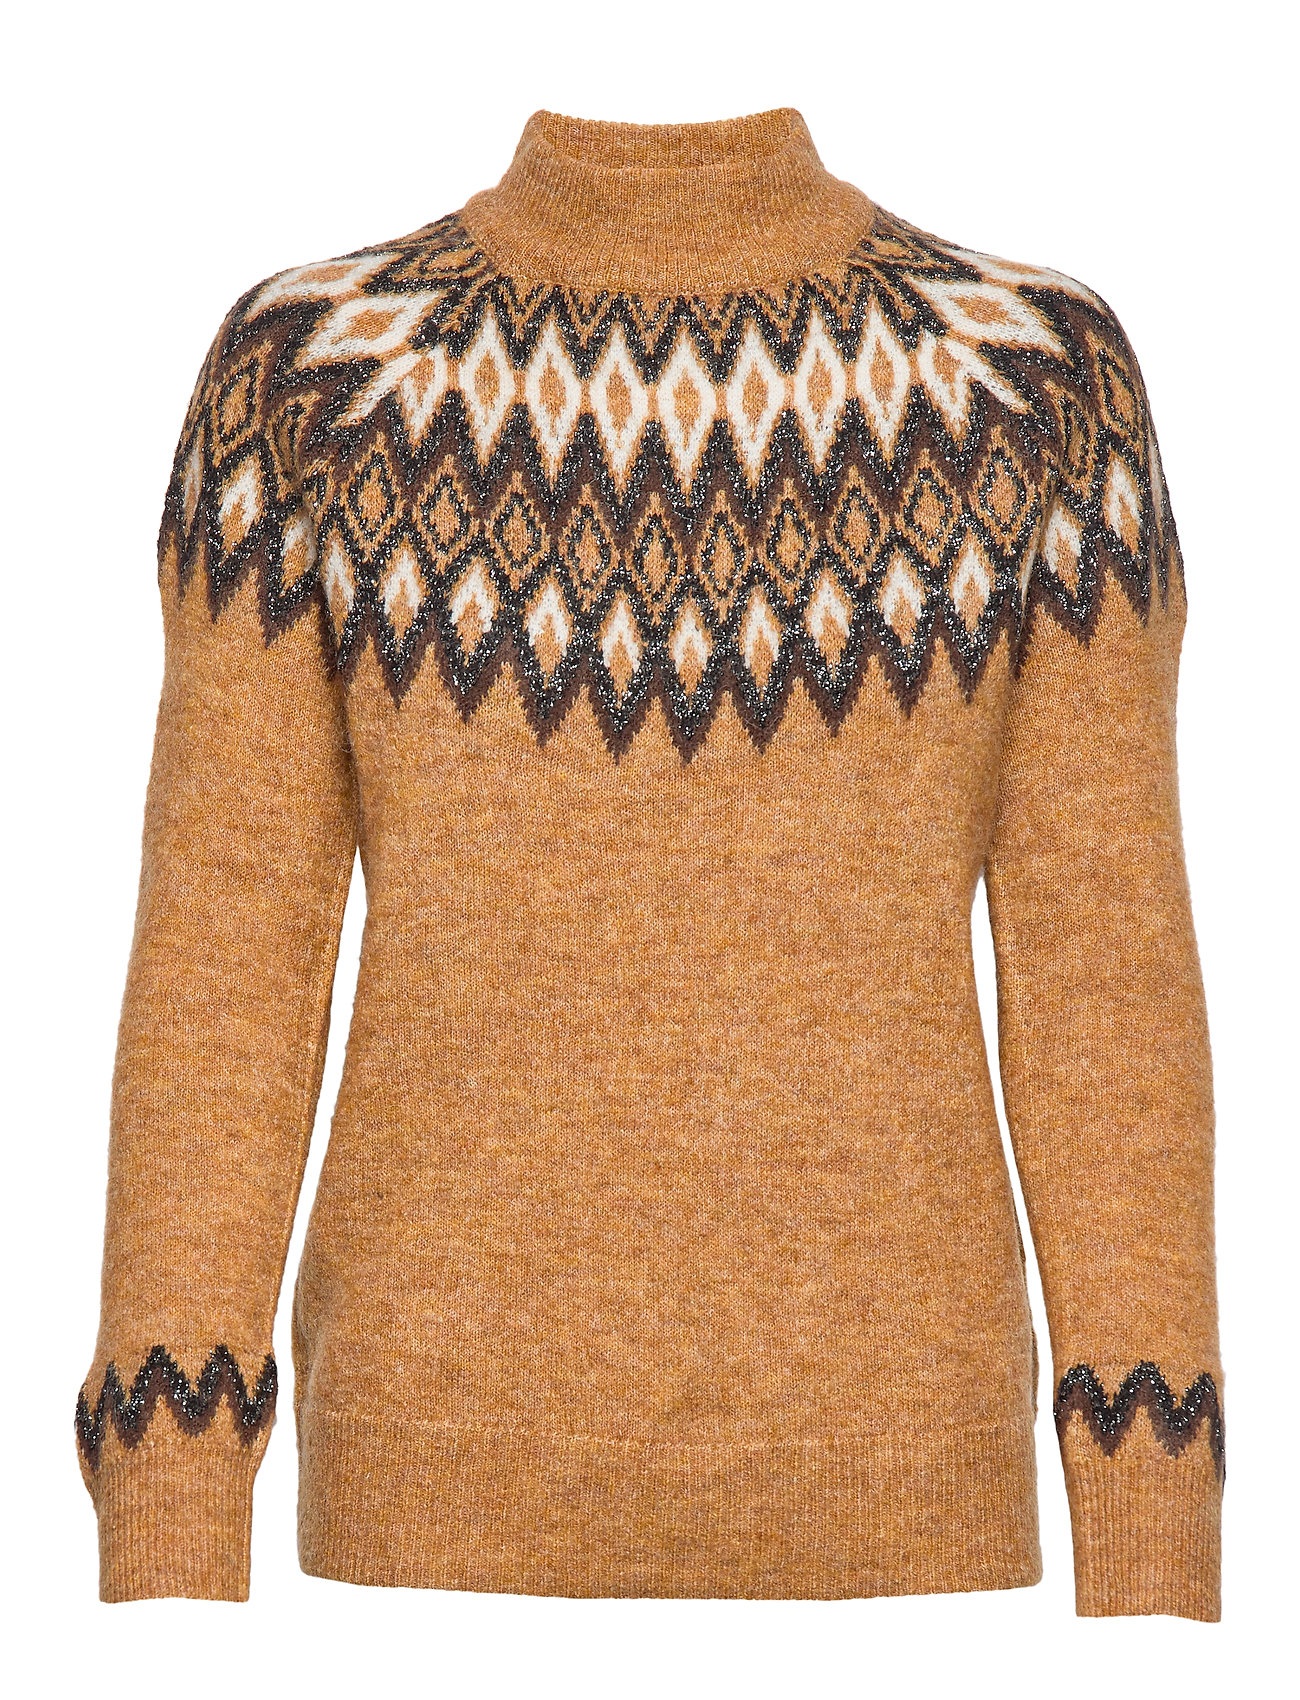 b.young BYMIXO JUMPER - ALMOND COMBI